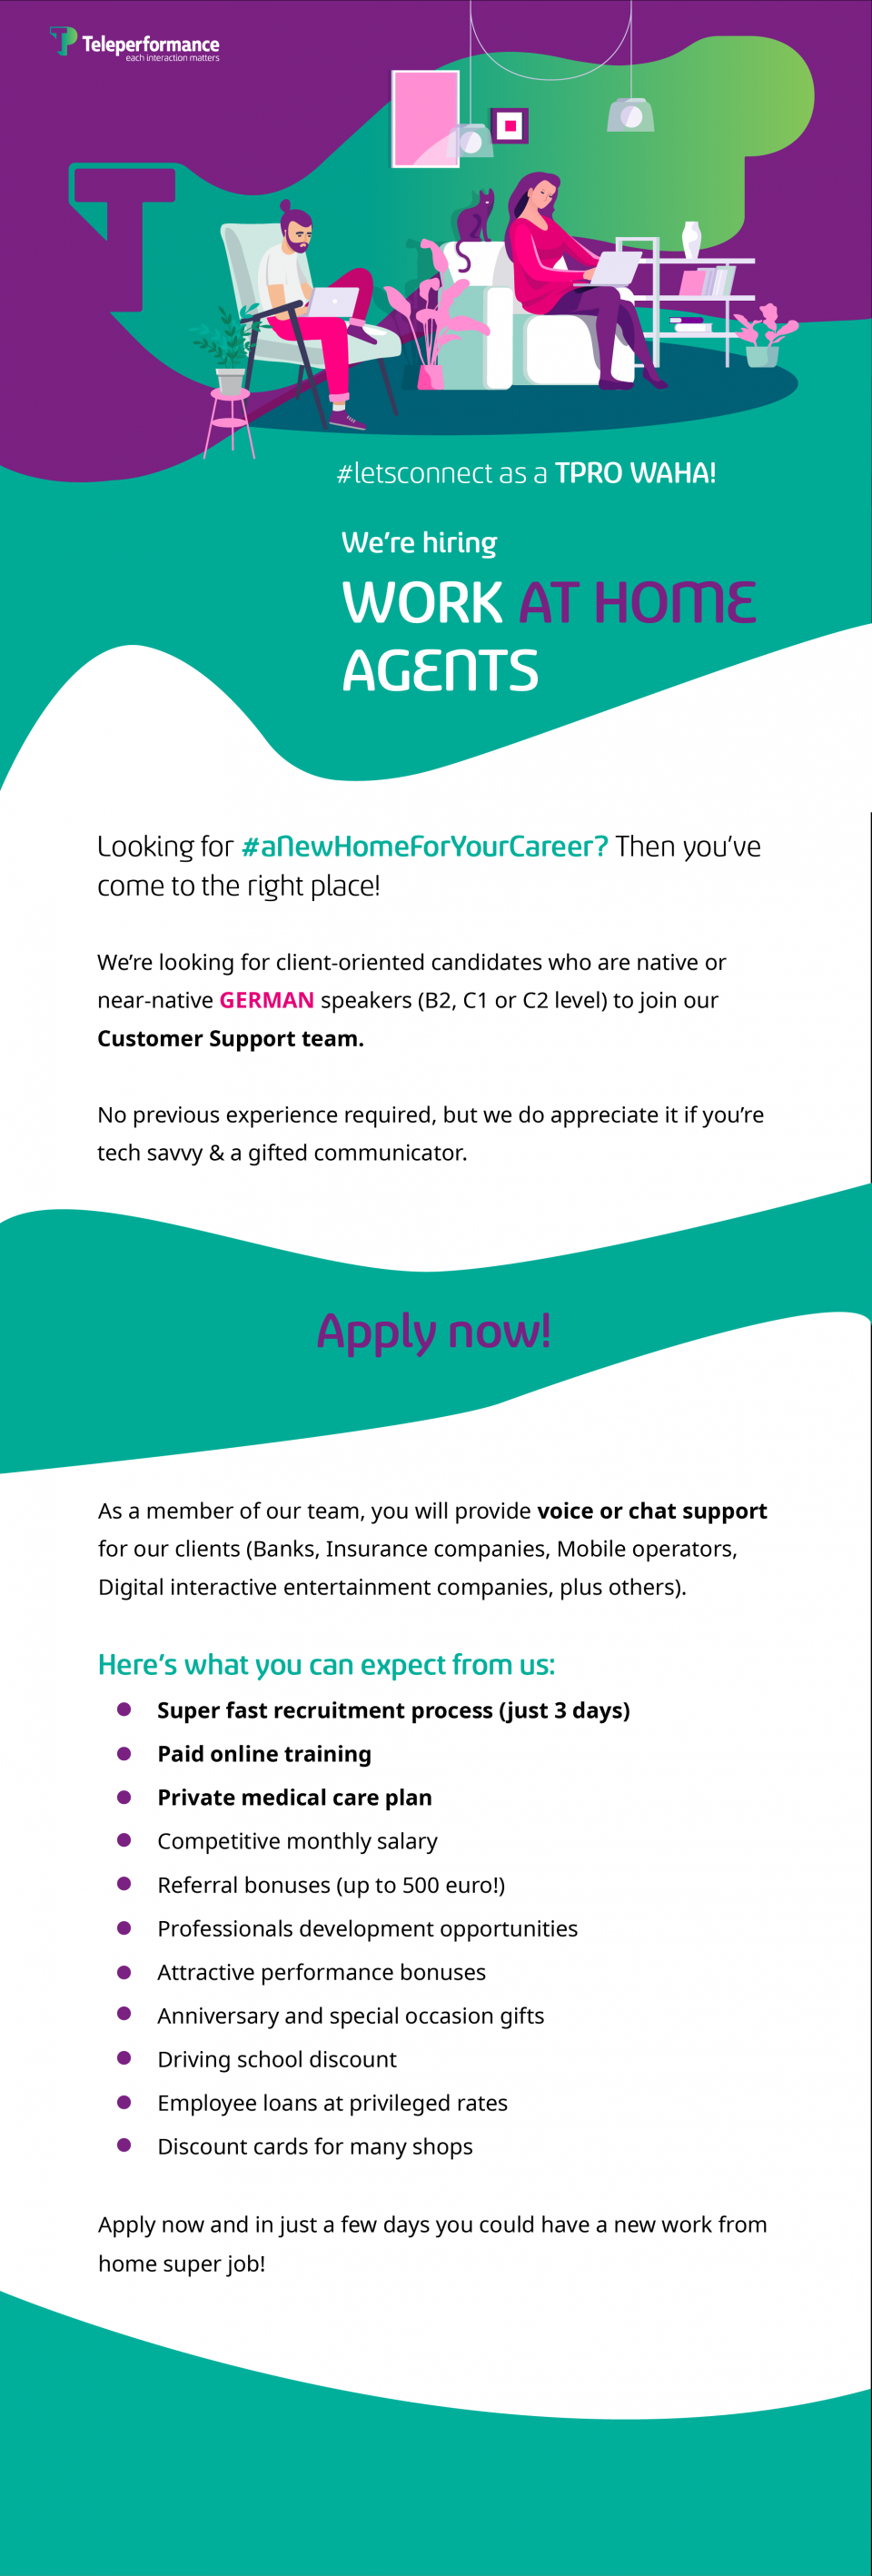 #letsconnect as a TPRO WAHA!  We're hiring Work AT HOME Agents Looking for #aNewHomeForYourCareer? Then you've come to the right place! We're looking for client-oriented candidates who are native or near-native GERMAN speakers (B2, C1 or C2 level) to join our Customer Support team.  No previous experience required, but we do appreciate it if you're tech savvy & a gifted communicator. Apply now!  As a member of our team, you will provide voice or chat support for our clients (Banks, Insurance companies, Mobile operators, Digital interactive entertainment companies, plus others). Here's what you can expect from us: ➔ Super-fast recruitment process (just 3 days) ➔ Competitive monthly salary ➔ Attractive performance bonuses ➔ Paid online training ➔ Referral bonuses (up to 500 euro!) ➔ Professionals development opportunities ➔ Private medical insurance ➔ Anniversary and special occasion gifts ➔ Driving school discount ➔ Employee loans at privileged rates ➔ Discount cards for many shops Apply now and in just a few days you could have a new work from home super job!